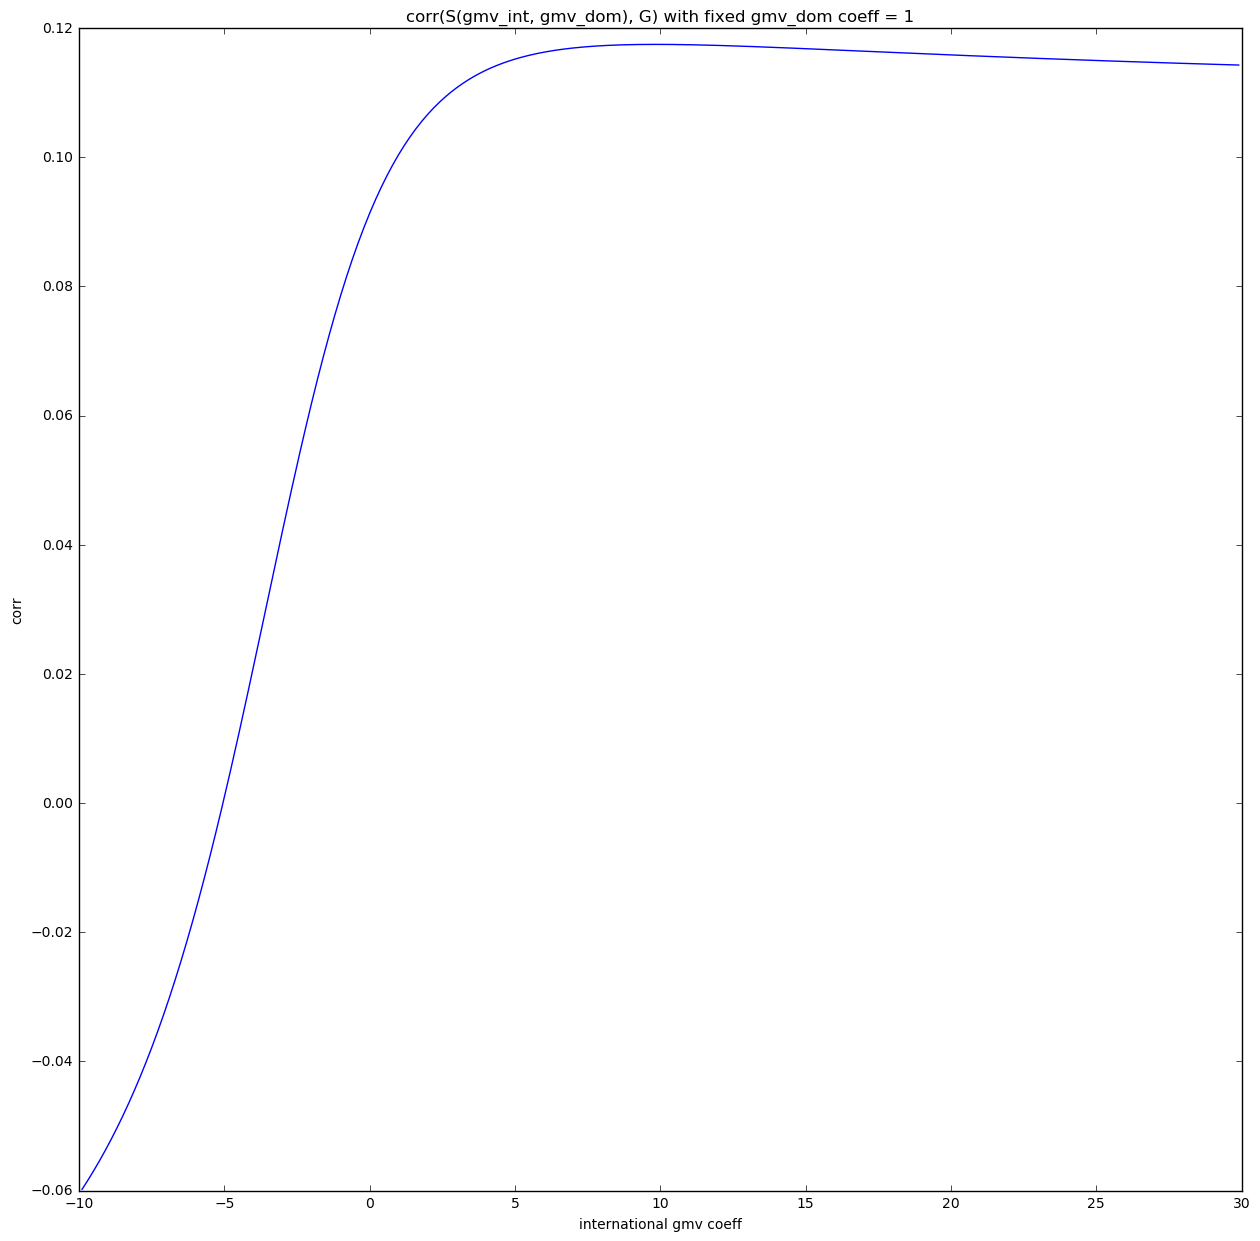 Correlation space - 2 features